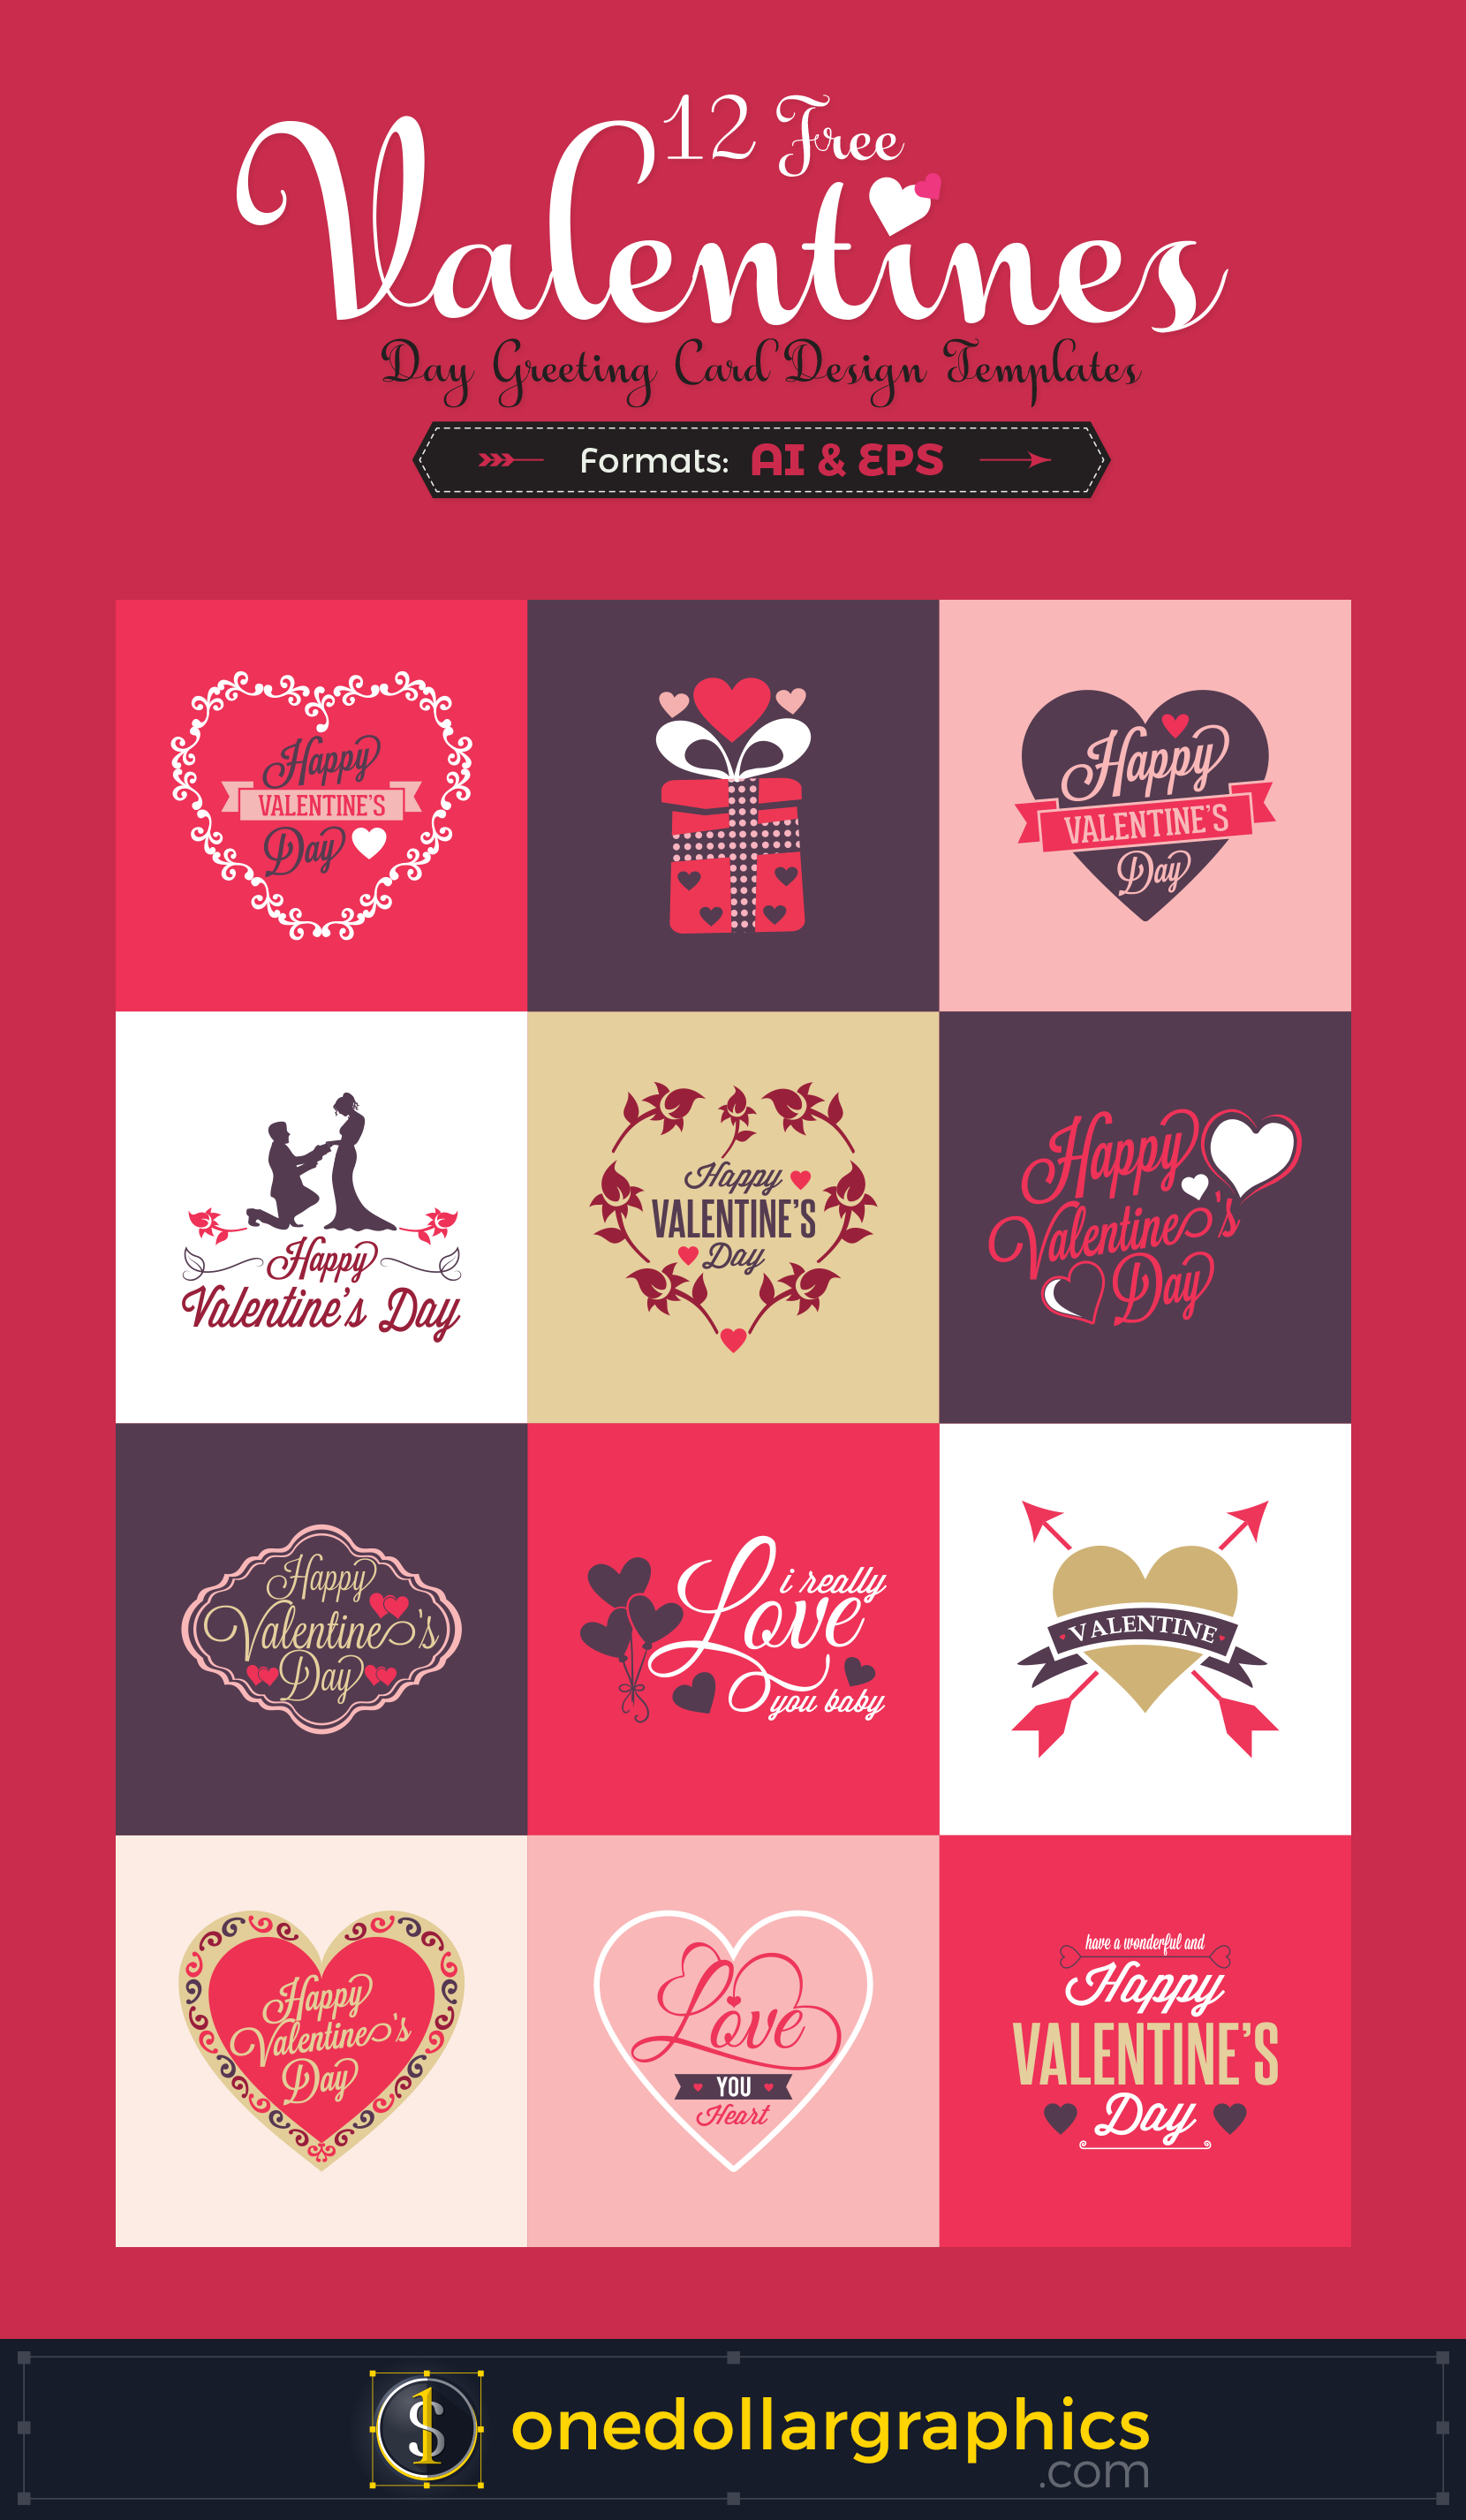 12-Free-Valentines-Day-Greeting-Card-Design-Templates